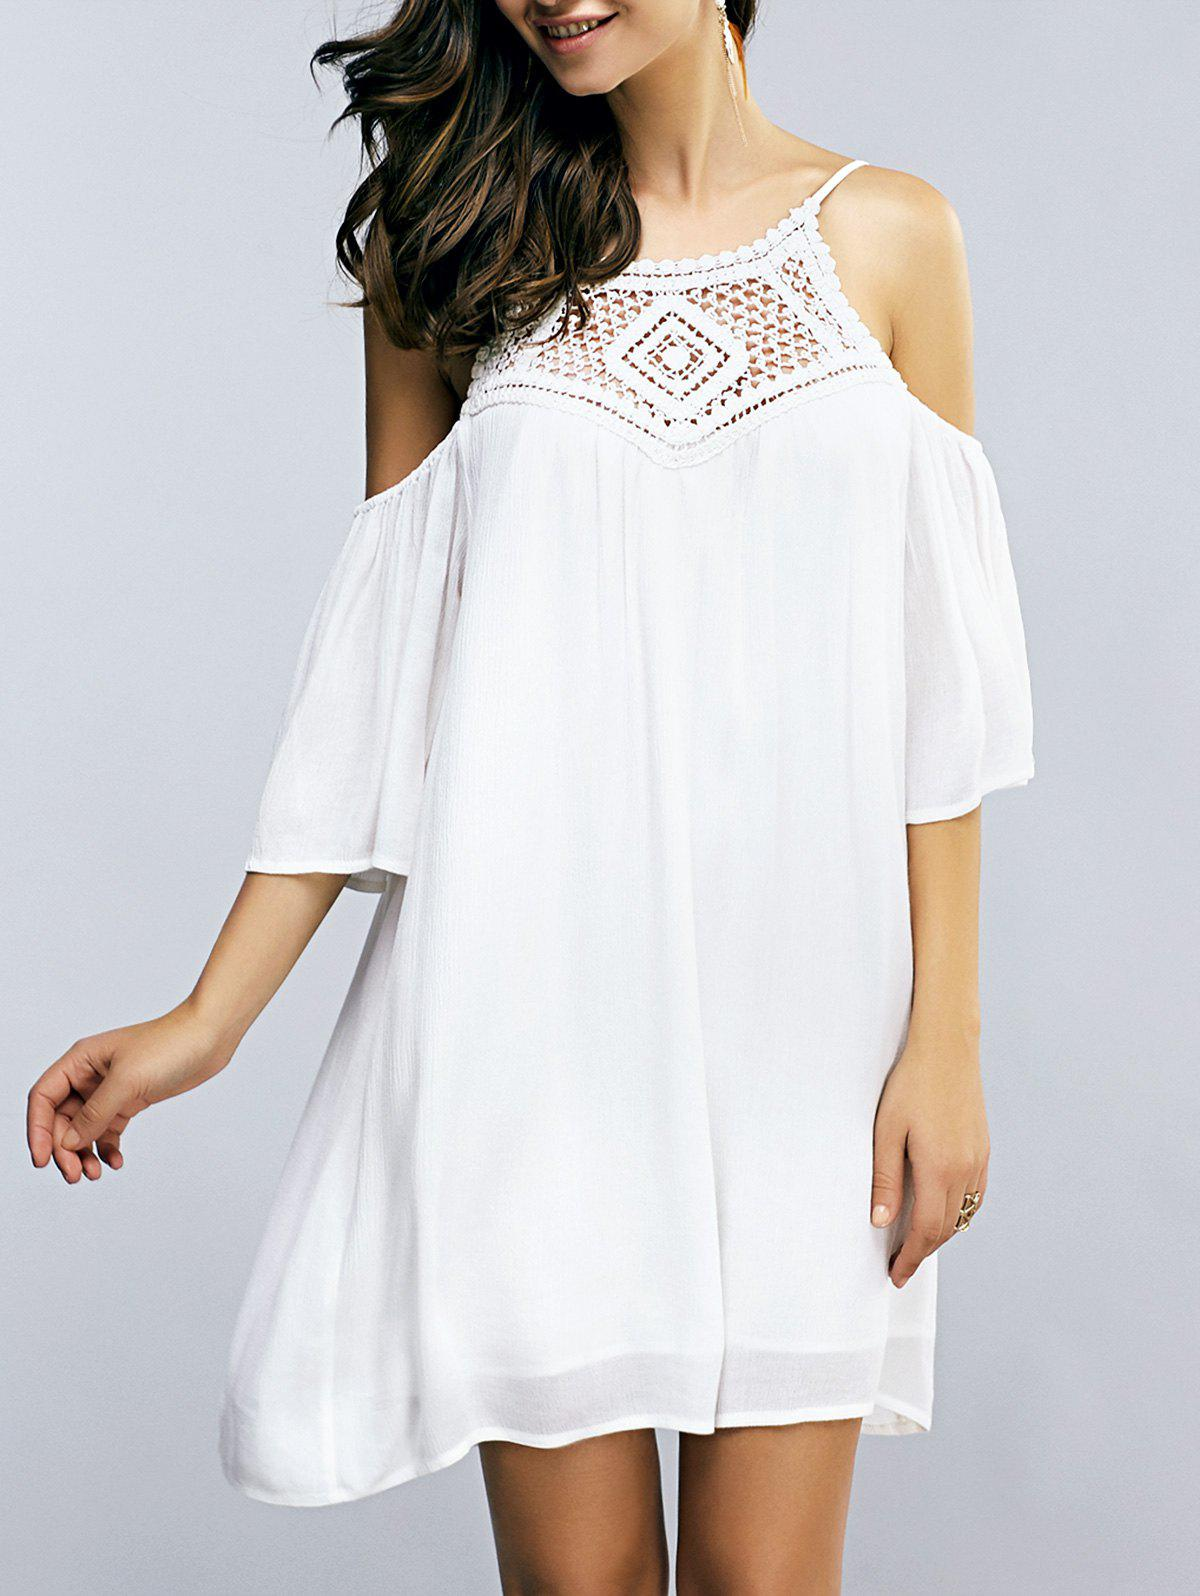 Casual Crochet Patchwork Open Back Summer Dress - OFF WHITE XL